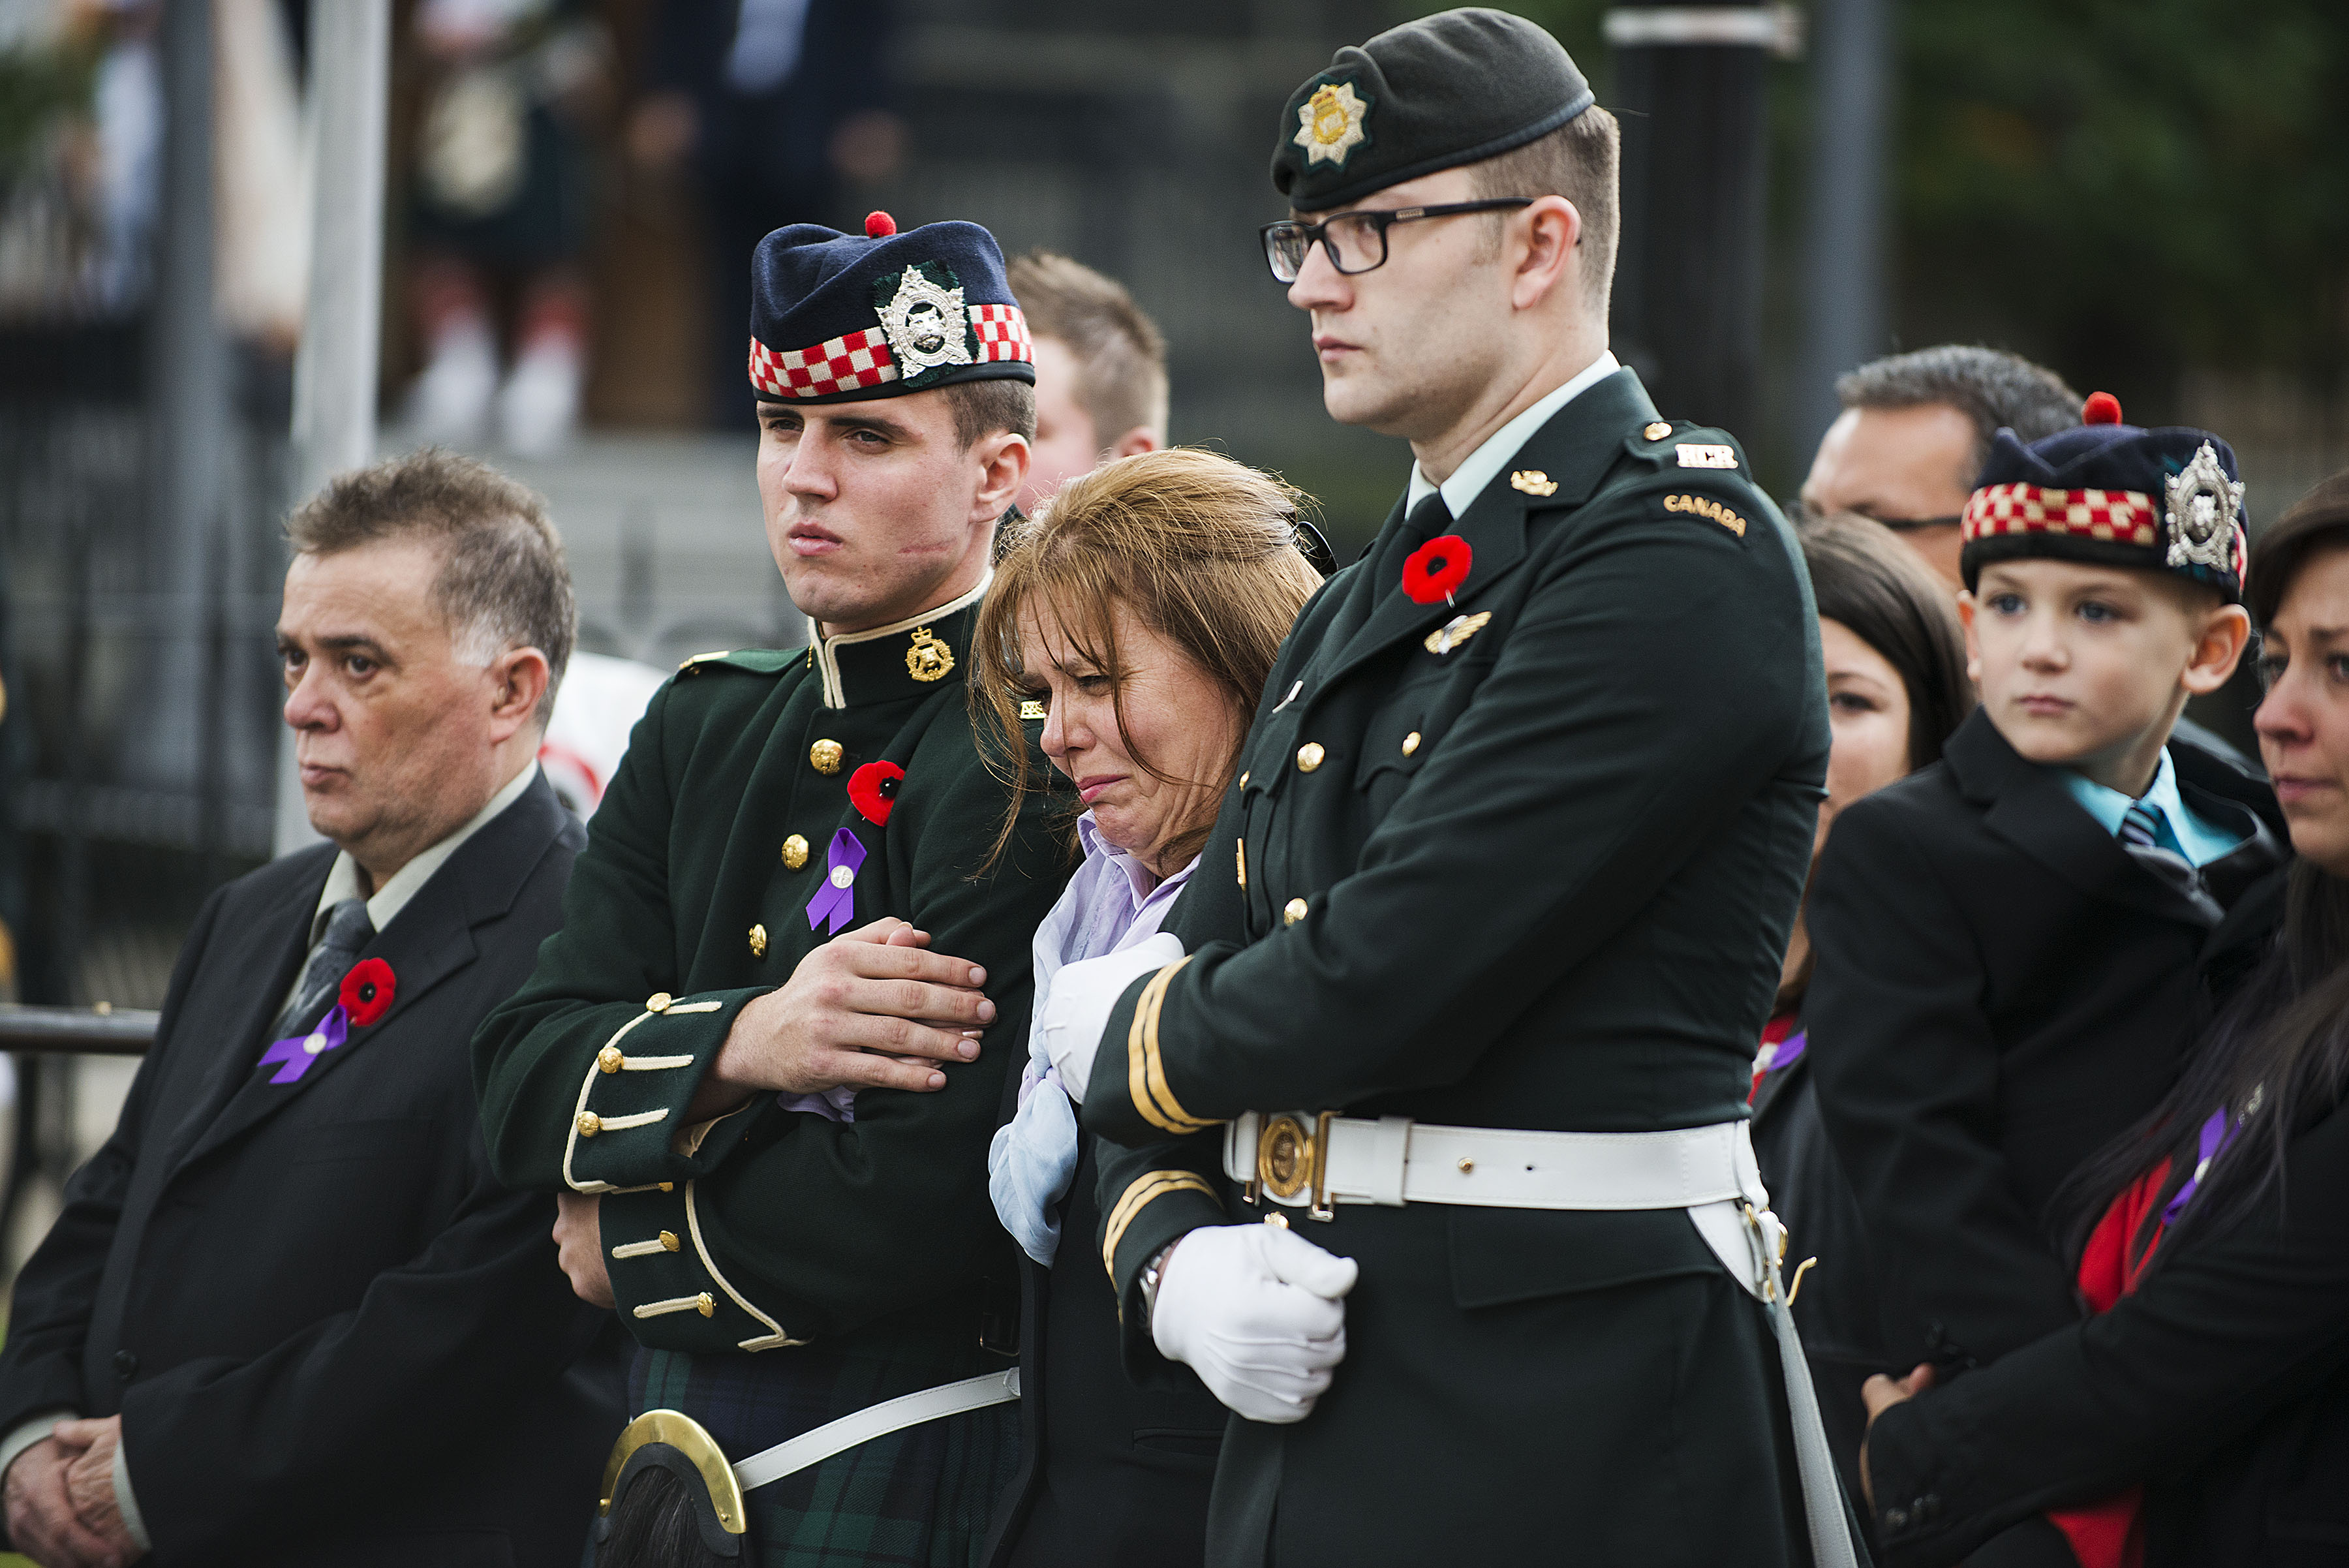 Kathy Cirillo (3rd L),  the wife of Cpl. Nathan Cirillo Laureen Cirillo, mourns as her son Marcus Cirillo (2nd R), looks on during Nathan Cirillo's funeral at the Christ's Church Cathedral on October 28, 2014 in Hamilton, Ontario, Canada. Cirillo was shot and killed while on duty at Parliament Hill in Ottawa by Michael Zehaf-Bibeau on October 22.  (Photo by Aaron Vincent Elkaim/Getty Images)